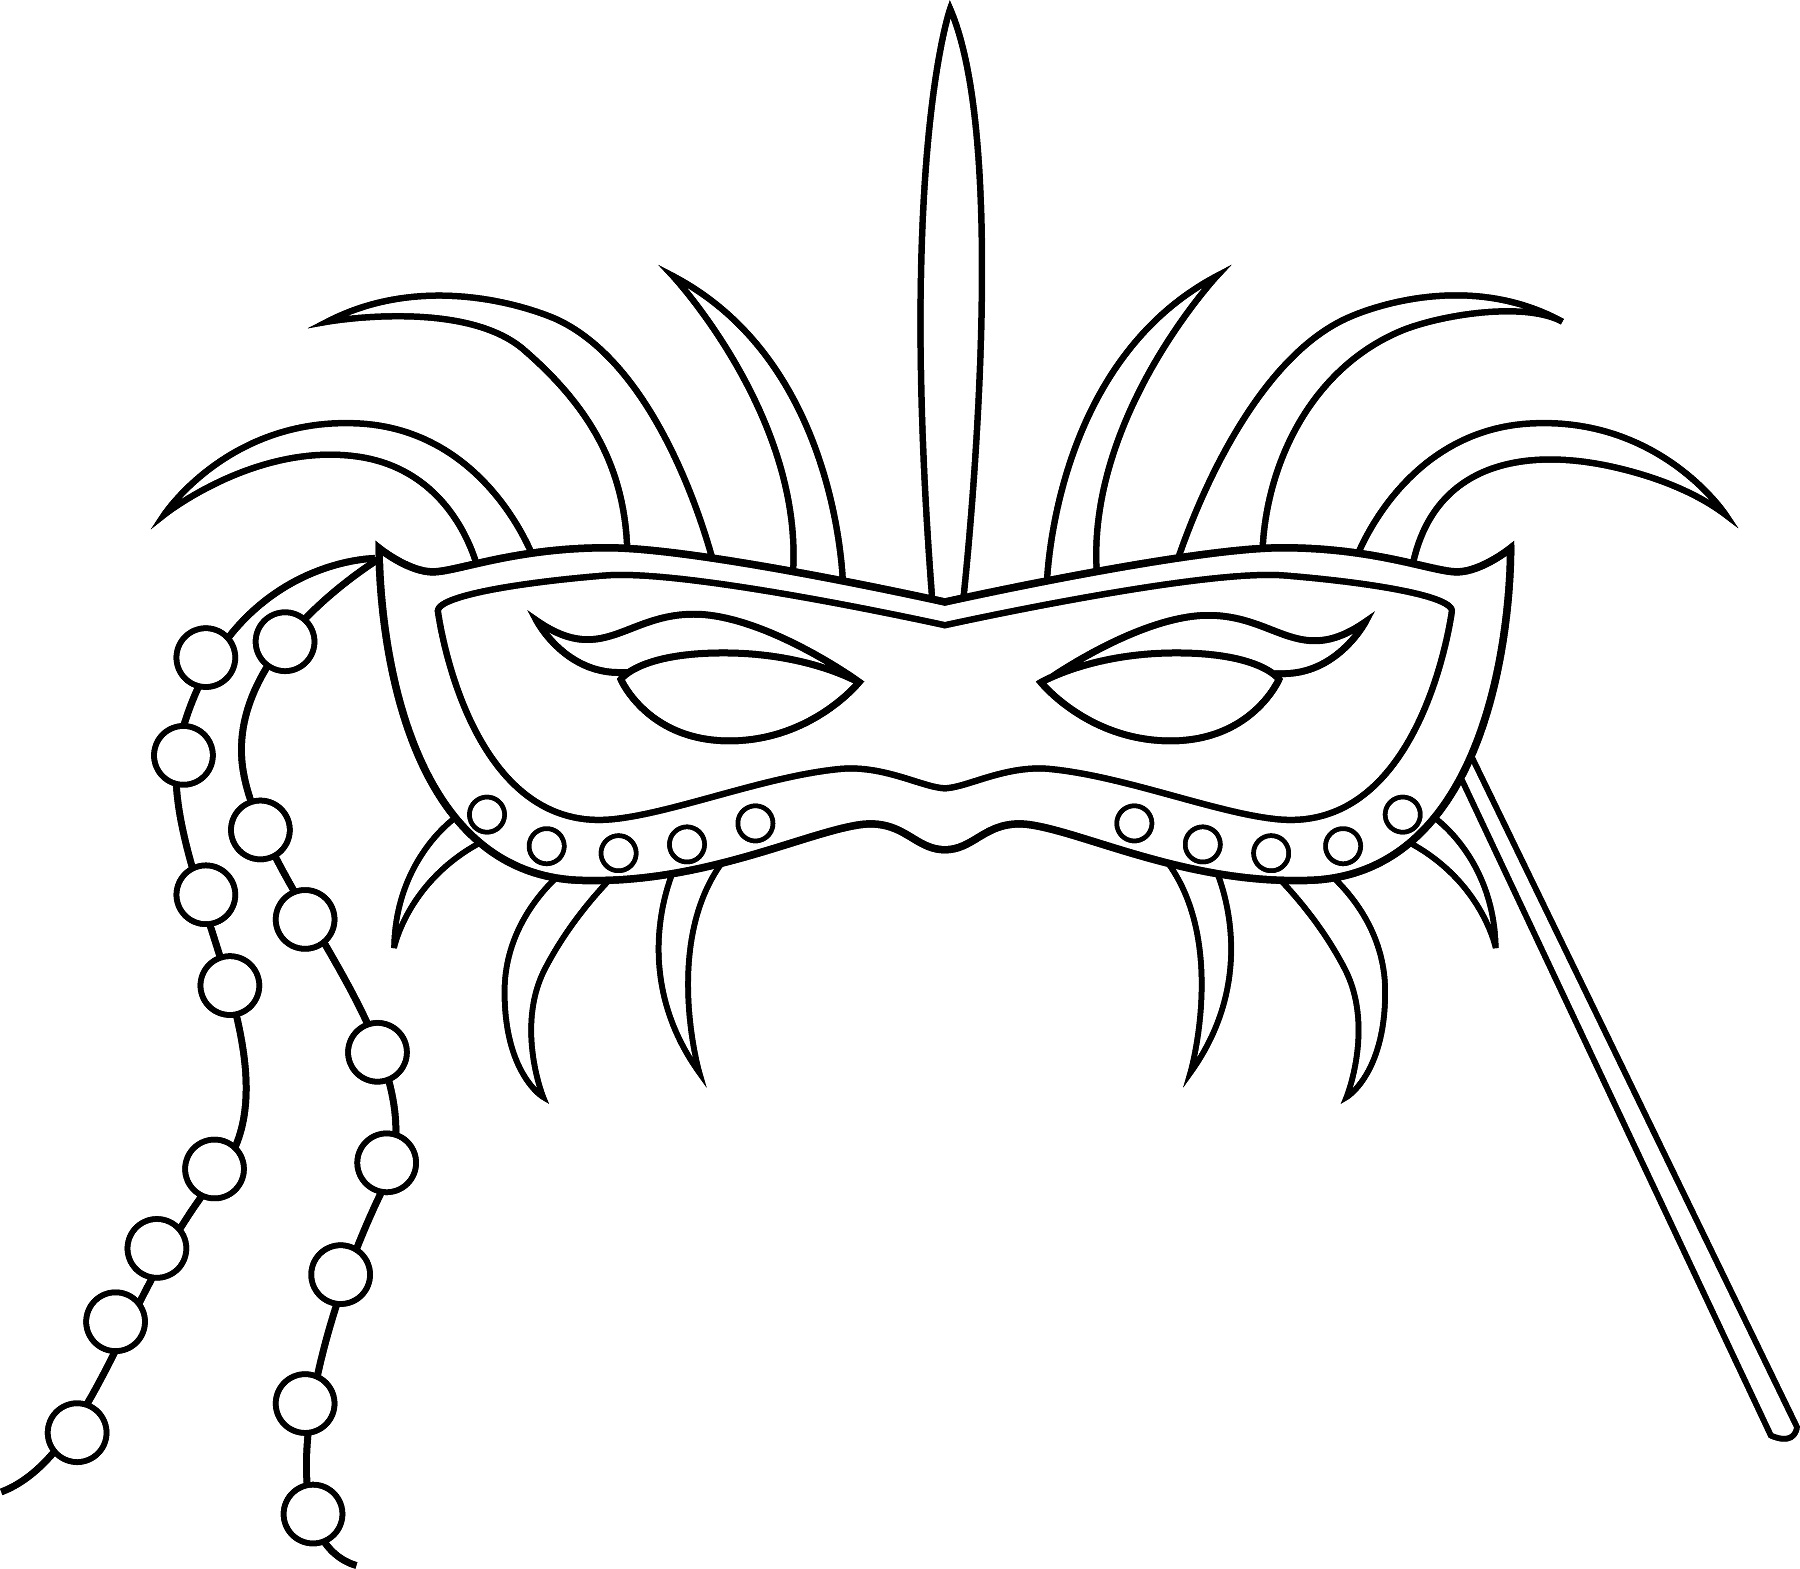 Free Printable Mask Coloring Pages For Kids – Mask Templates for Adults